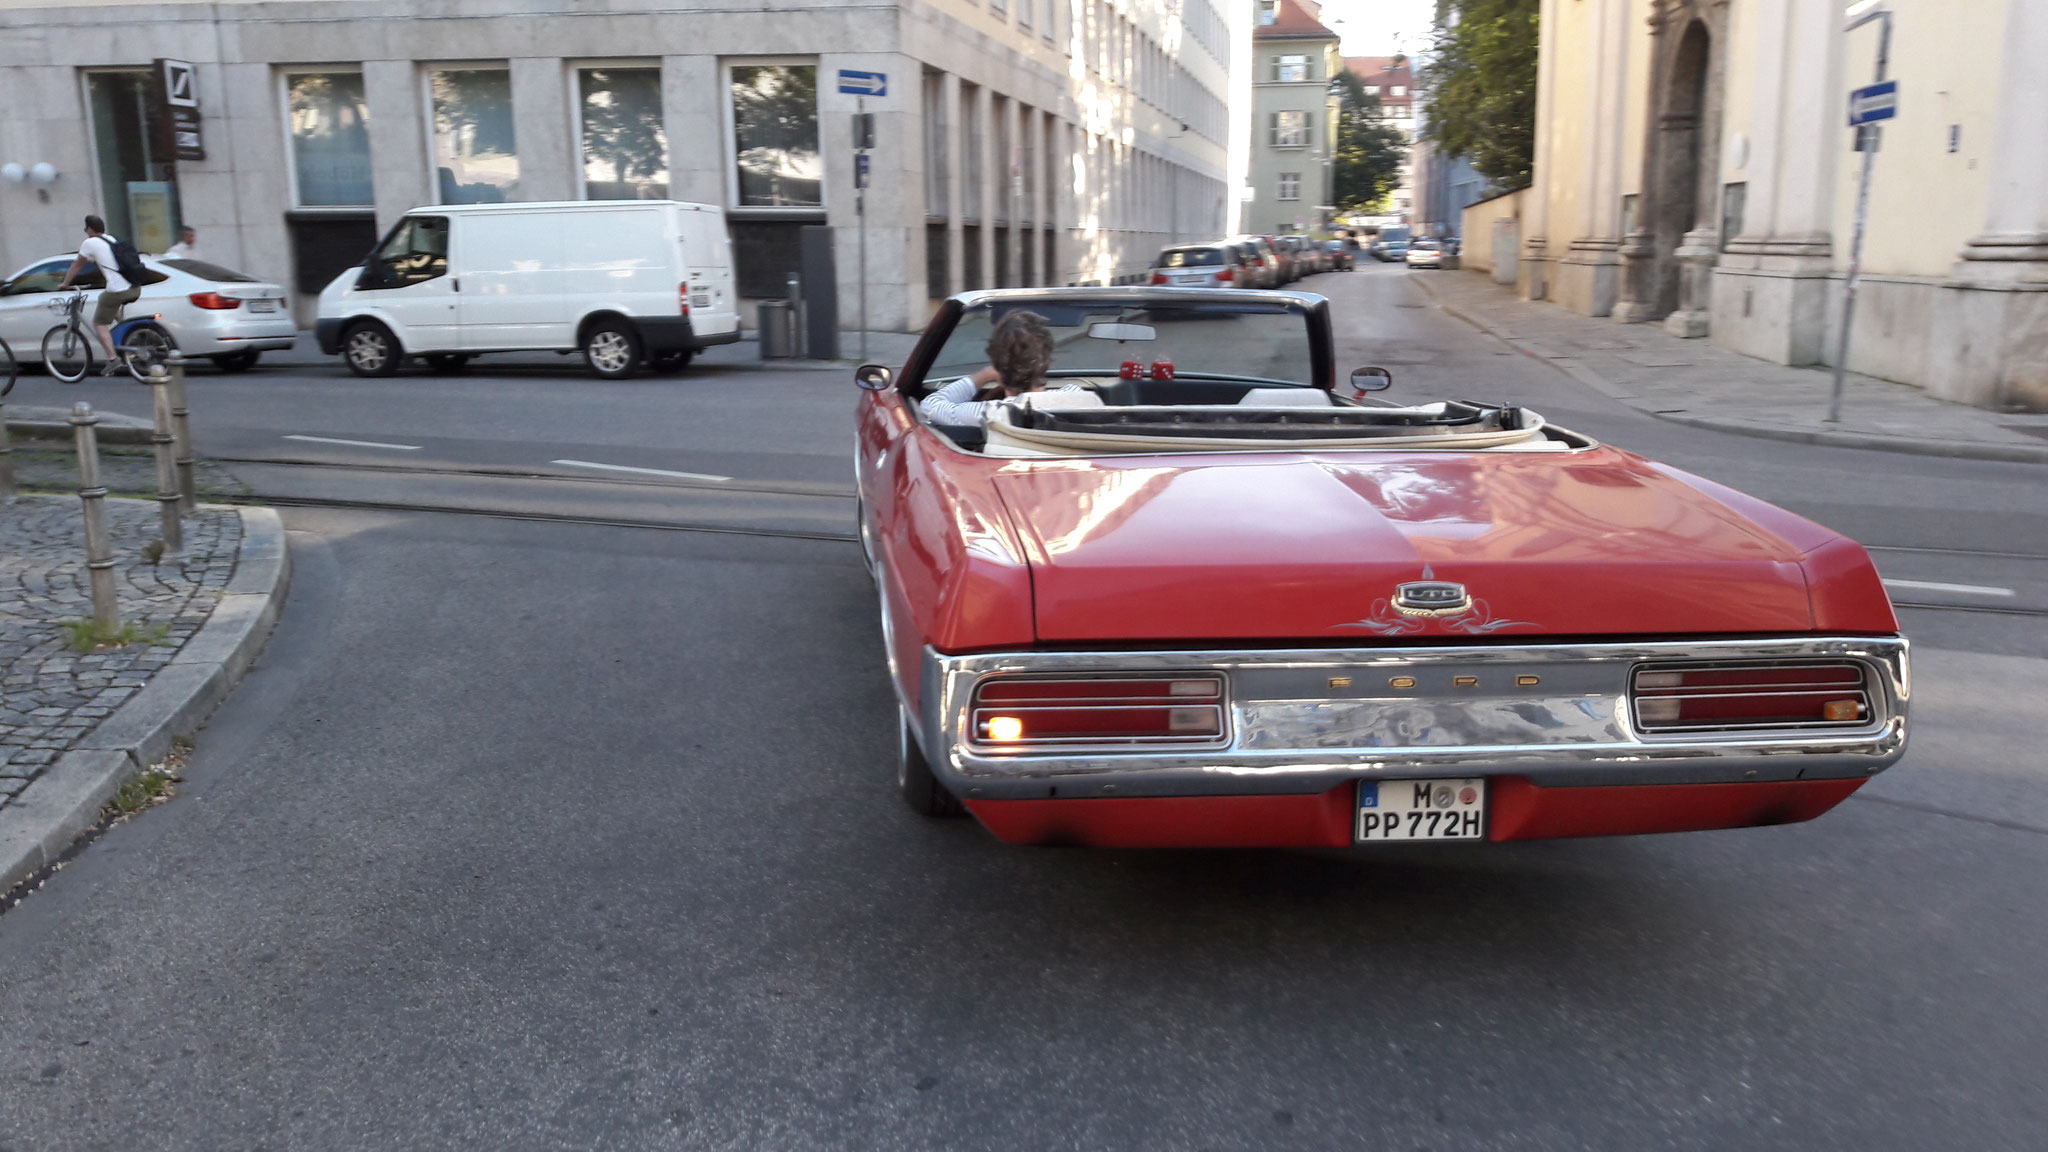 Ford LTD Convertible - M-PP-772H